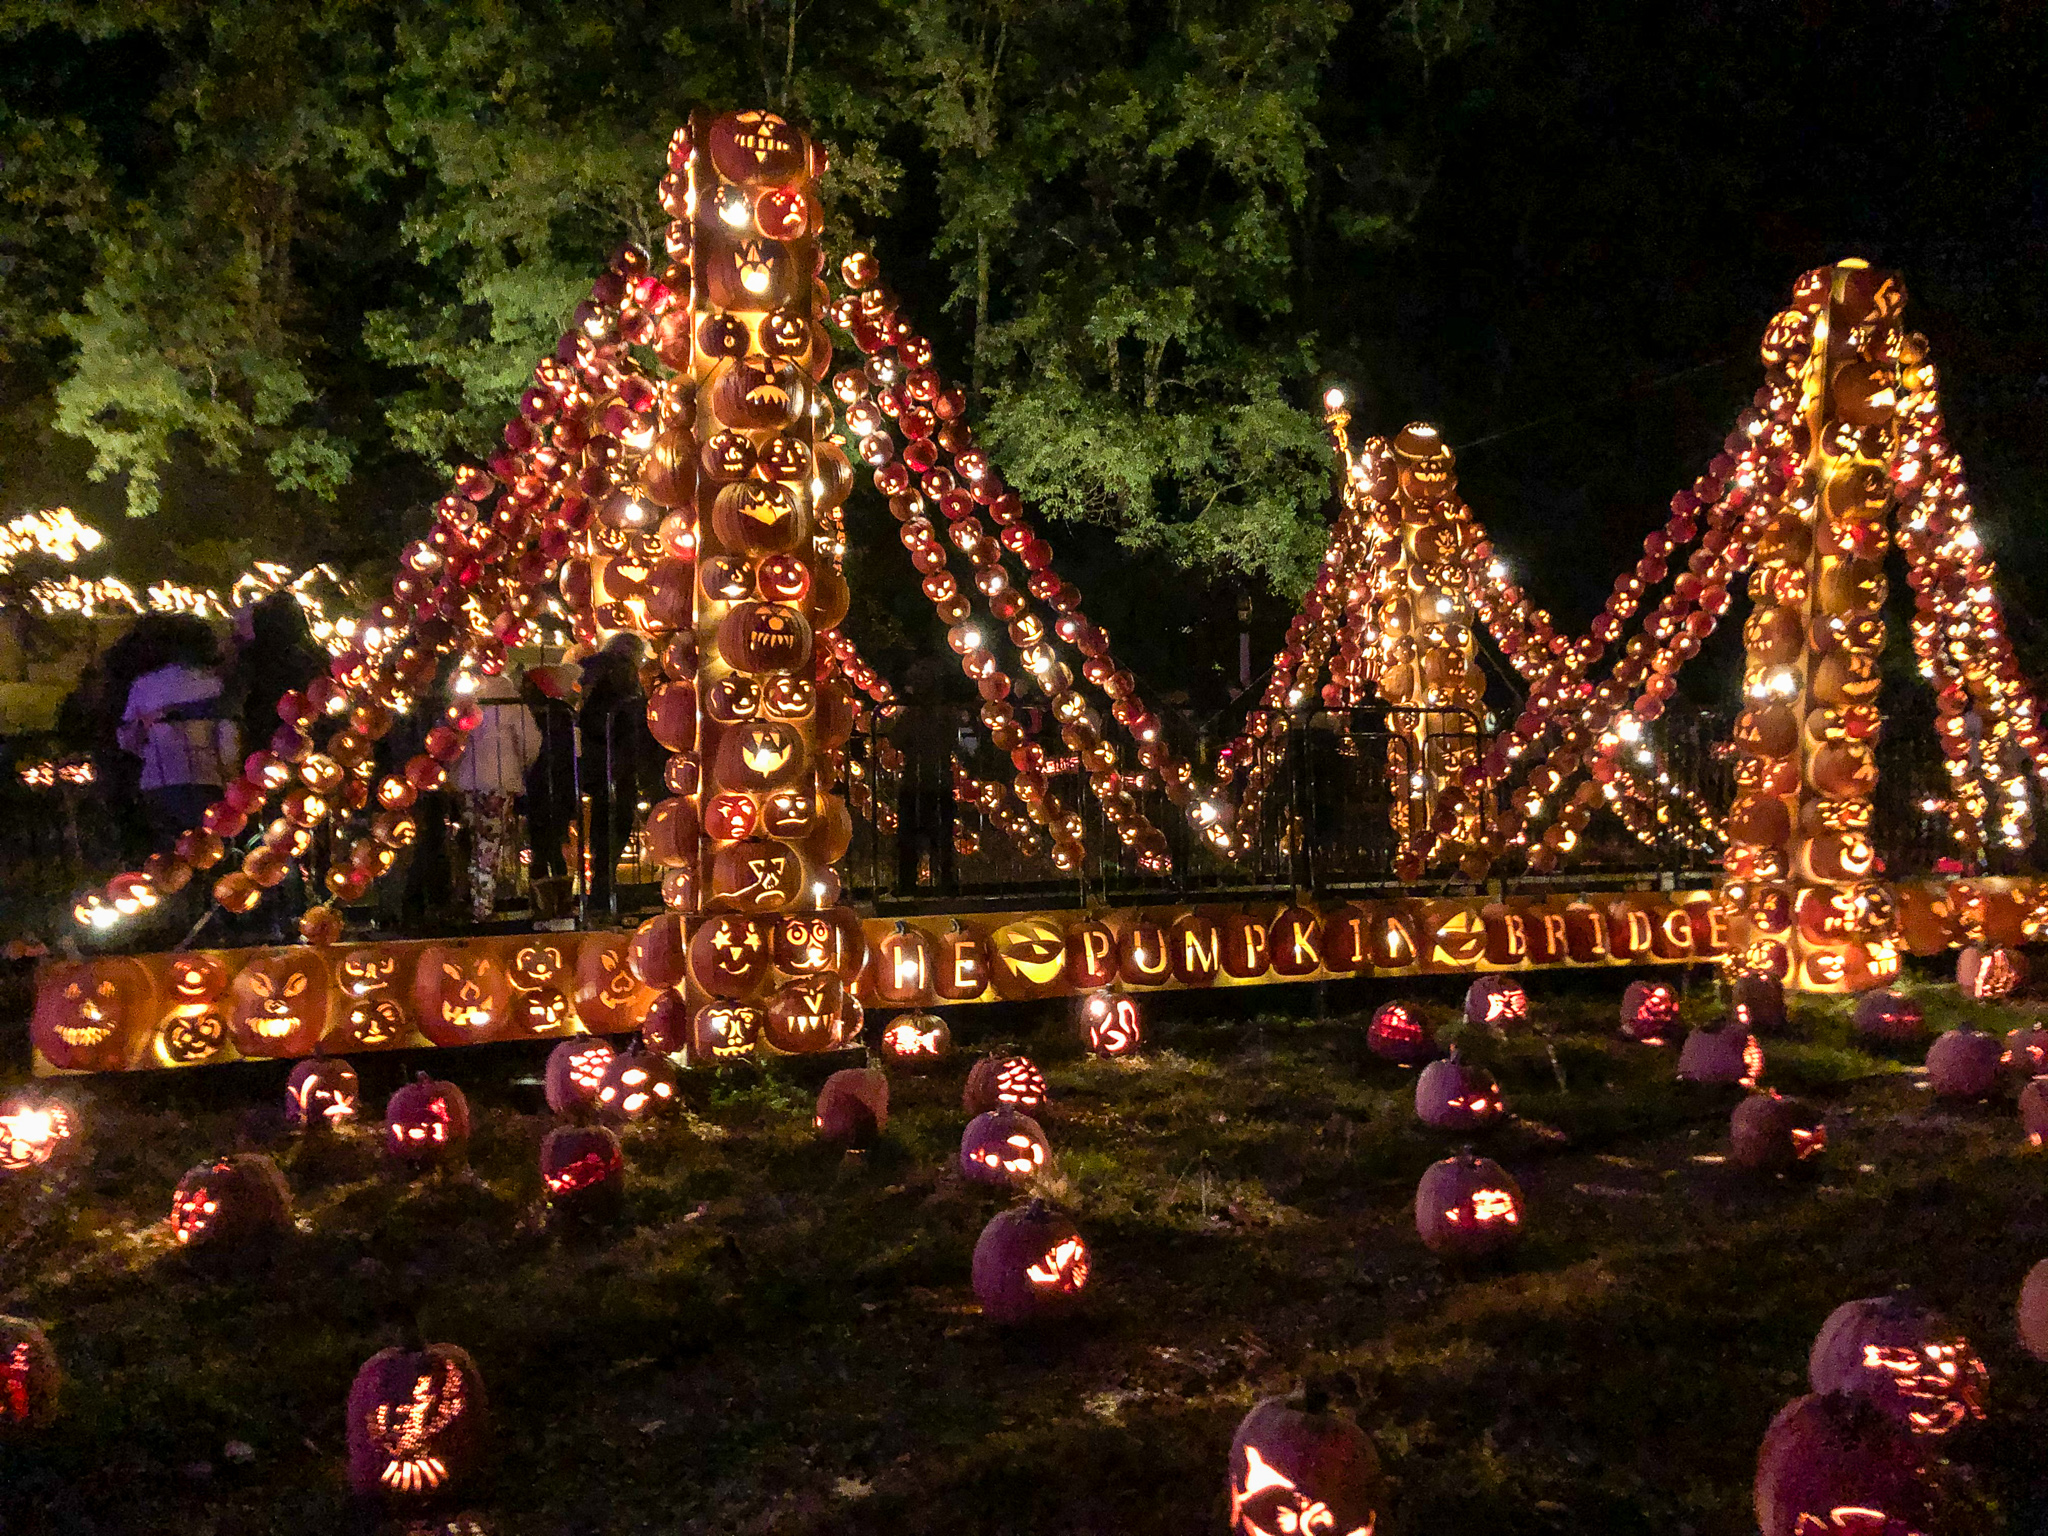 day trips from nyc fall: go to the jack o'lantern blaze